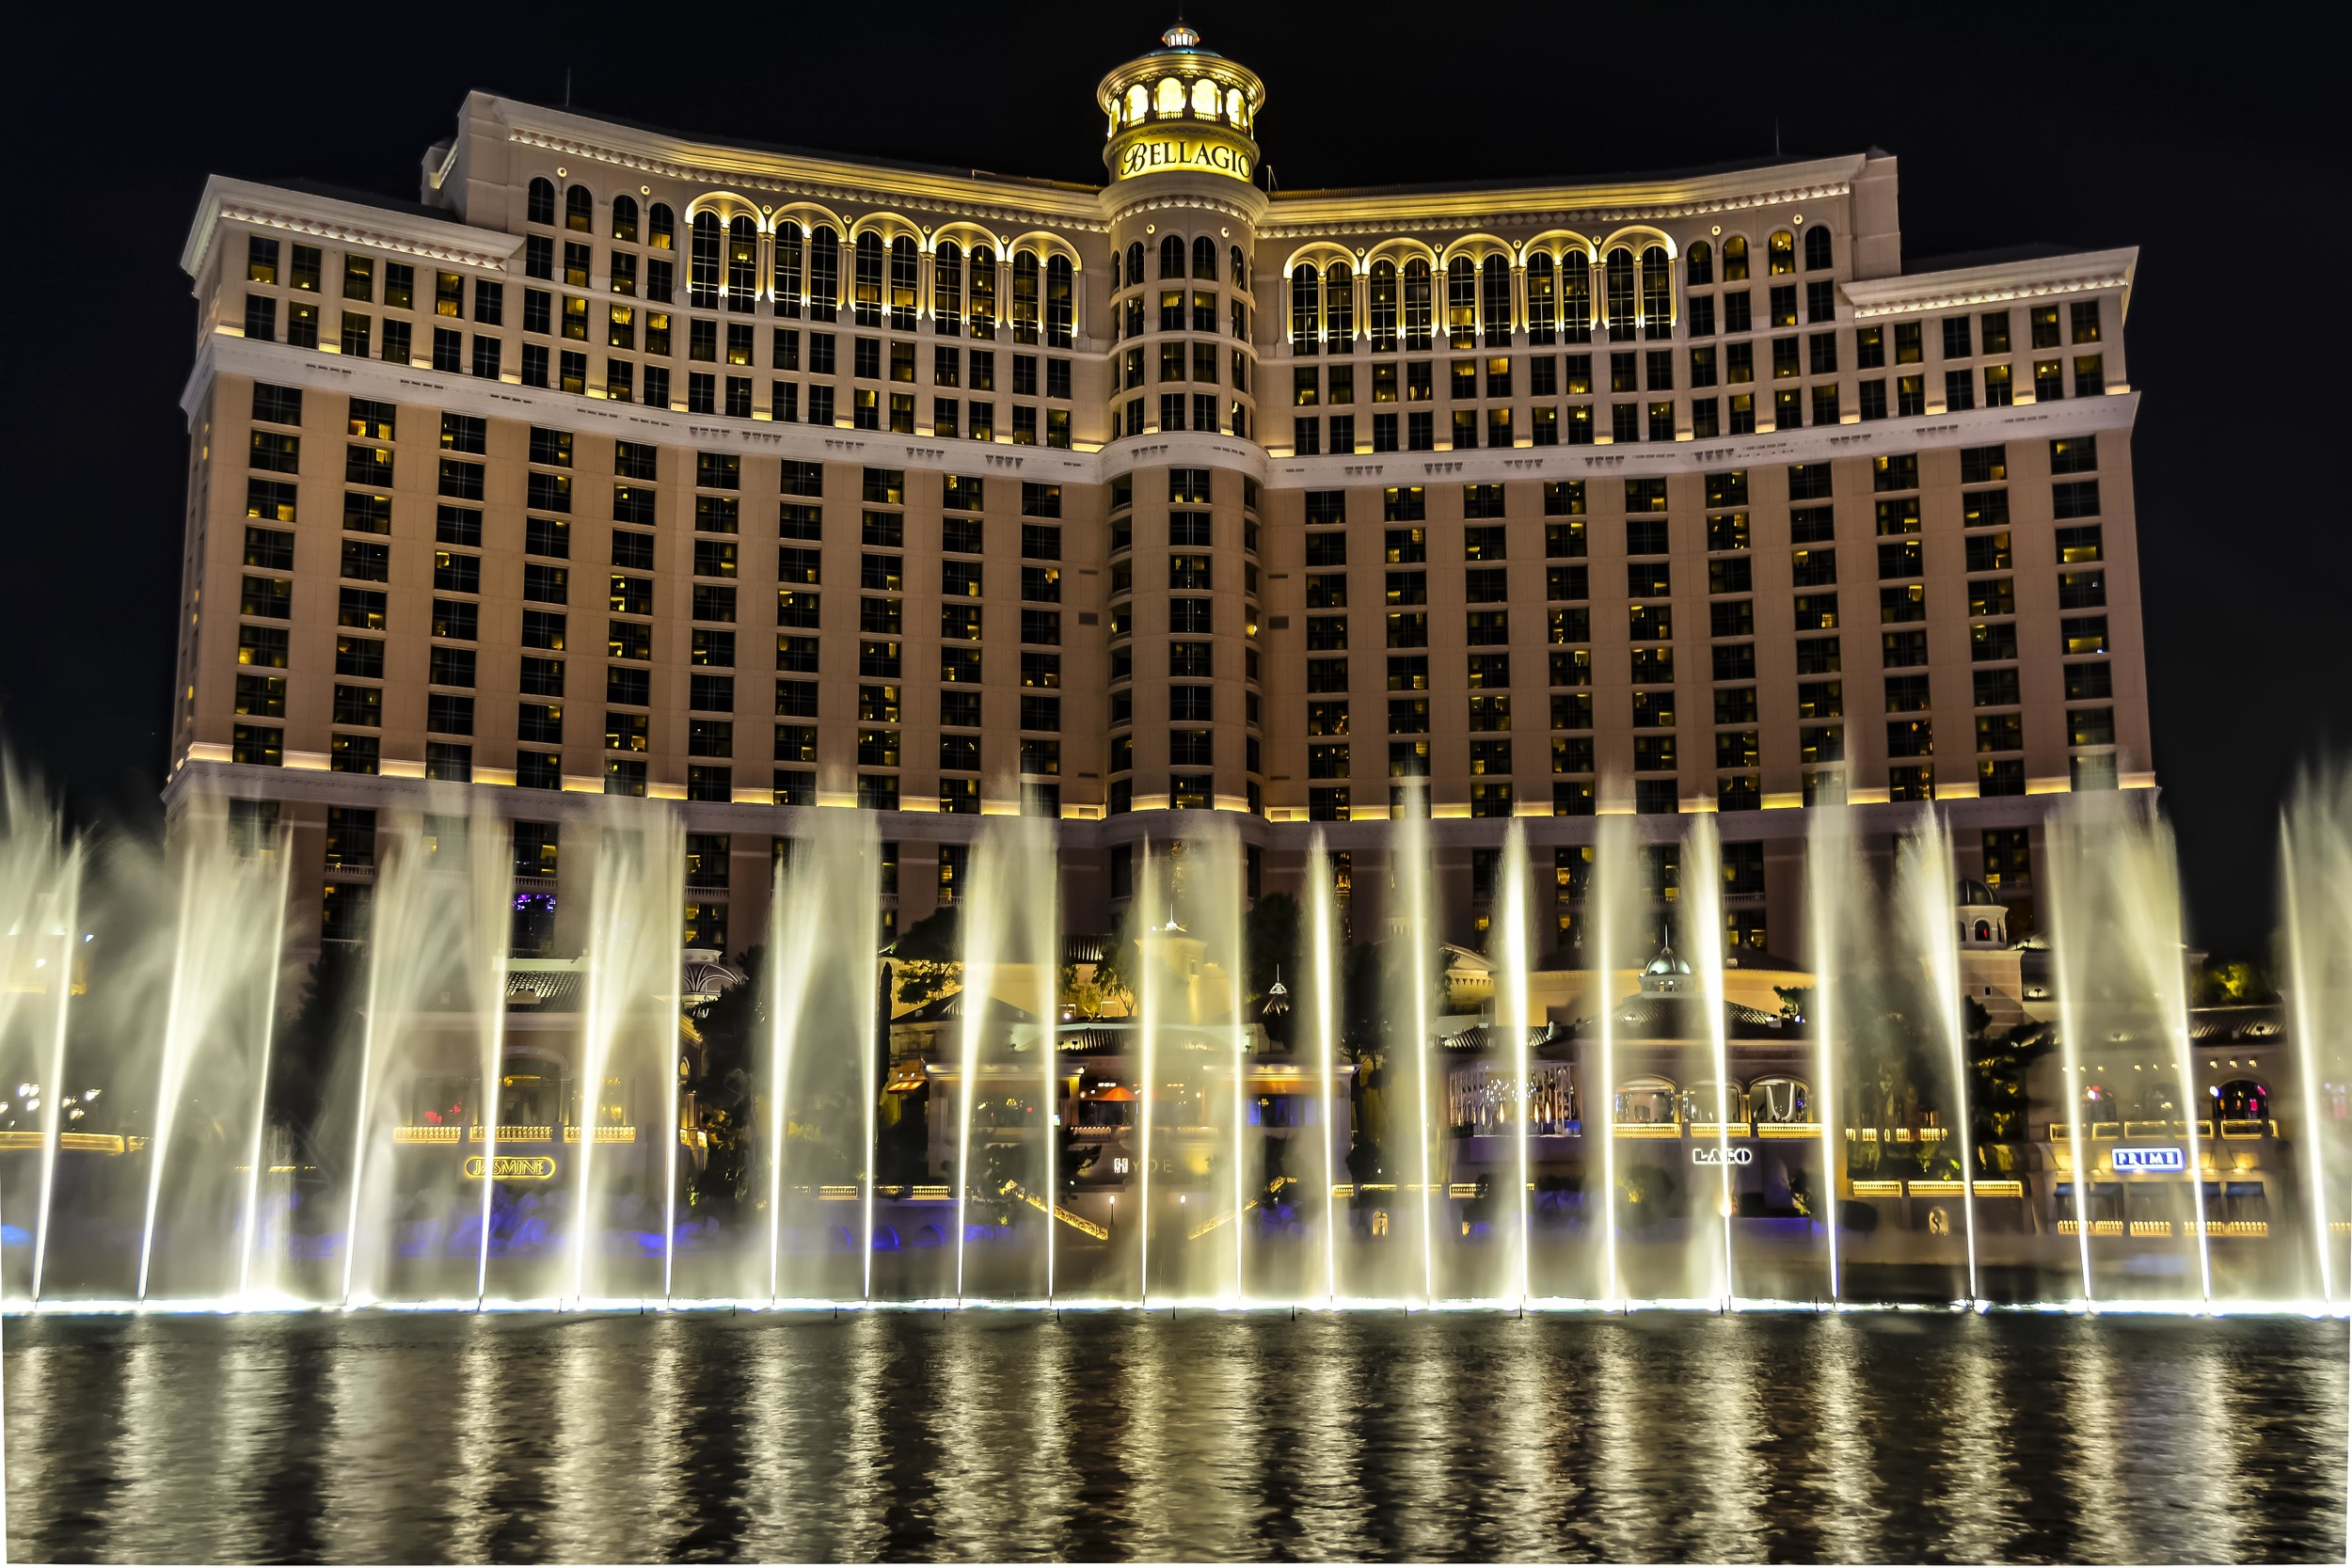 Fountains of Bellagio Las Vegas.jpg